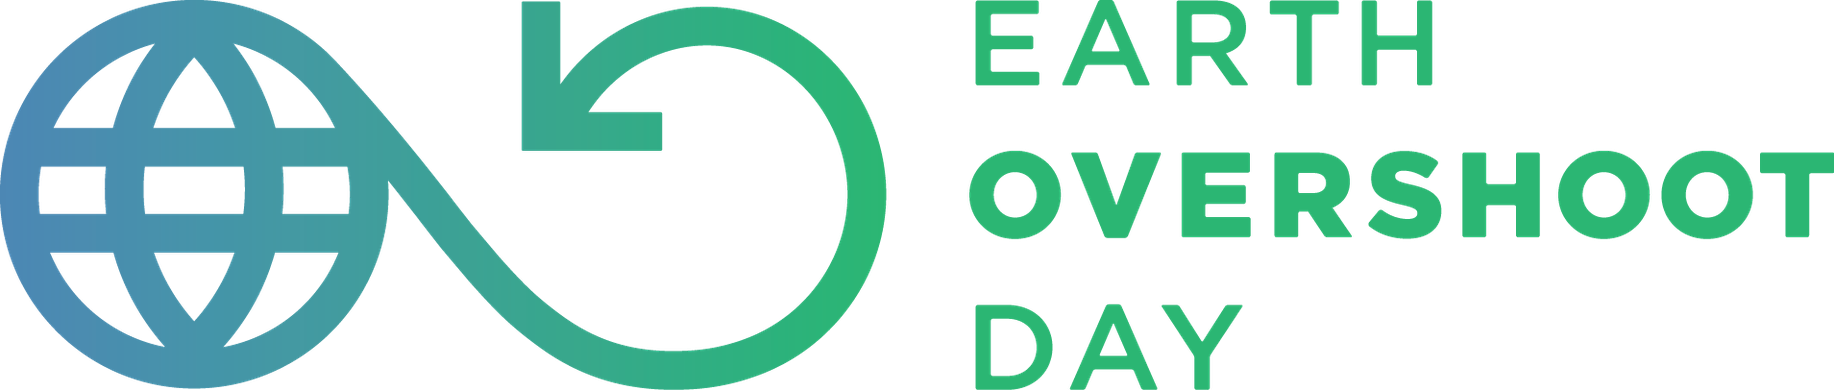 http___www.overshootday.org_wp_wp-content_uploads_2015_07_EOD_GRADIENT_LOGO.png